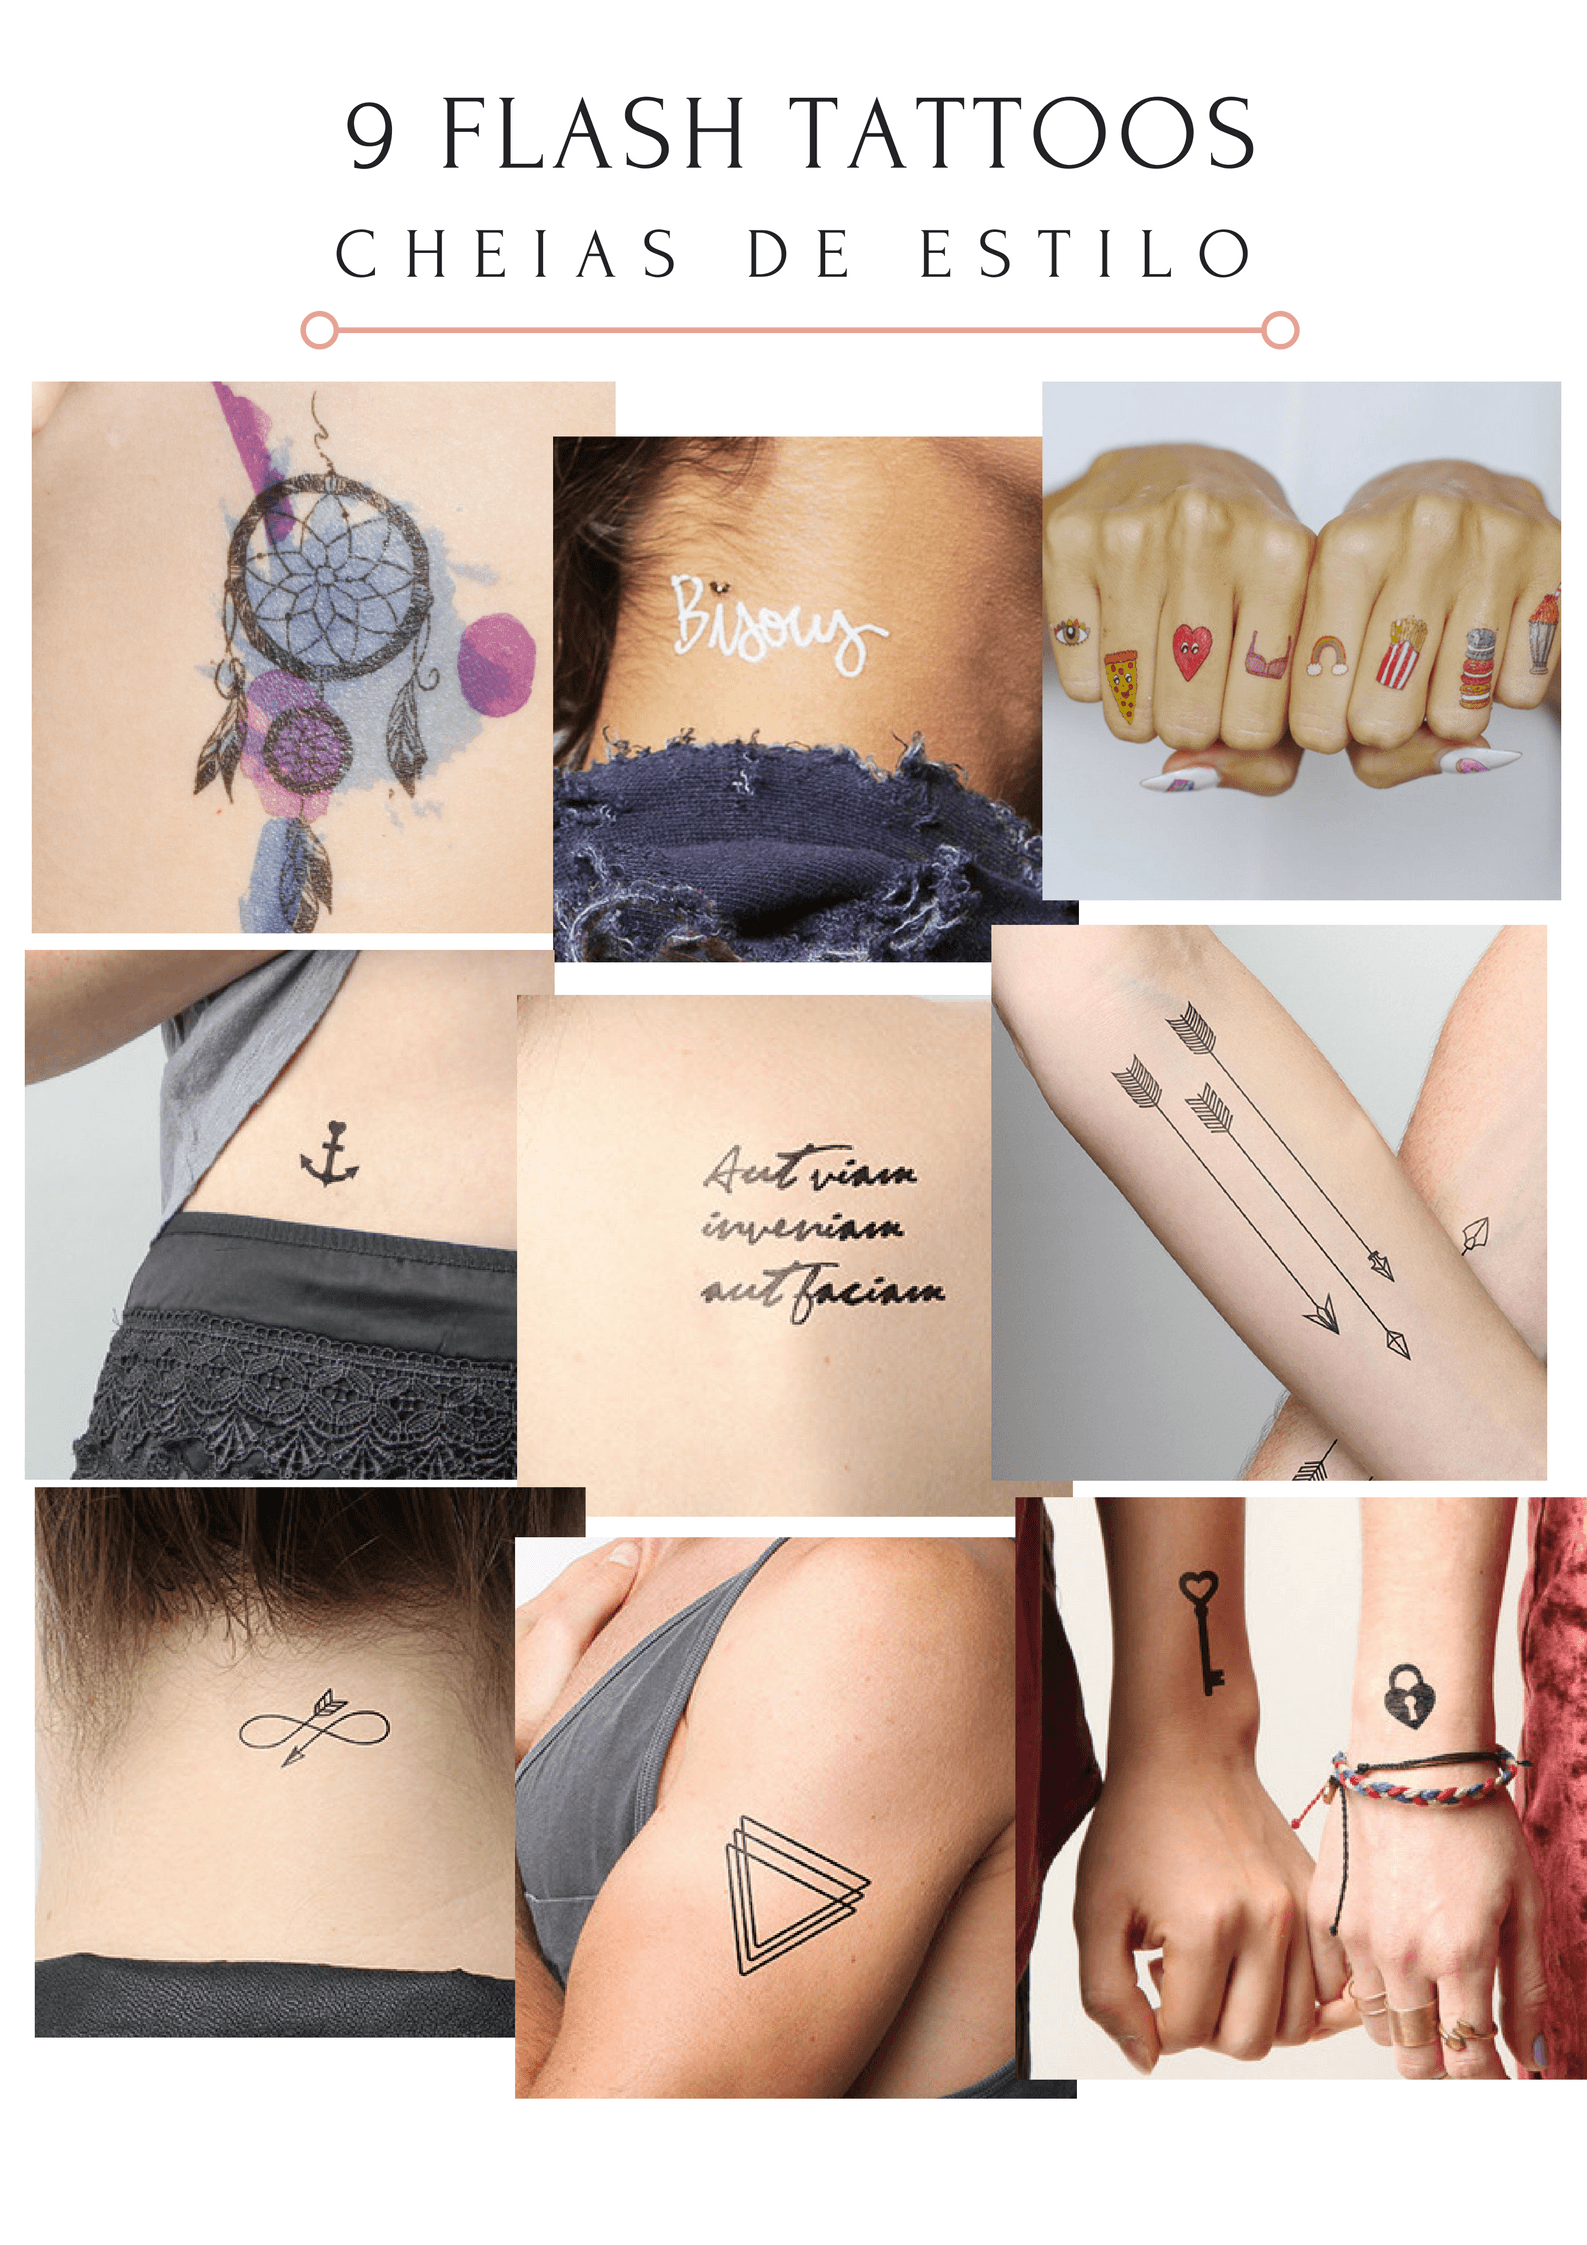 9-flash-tattoos